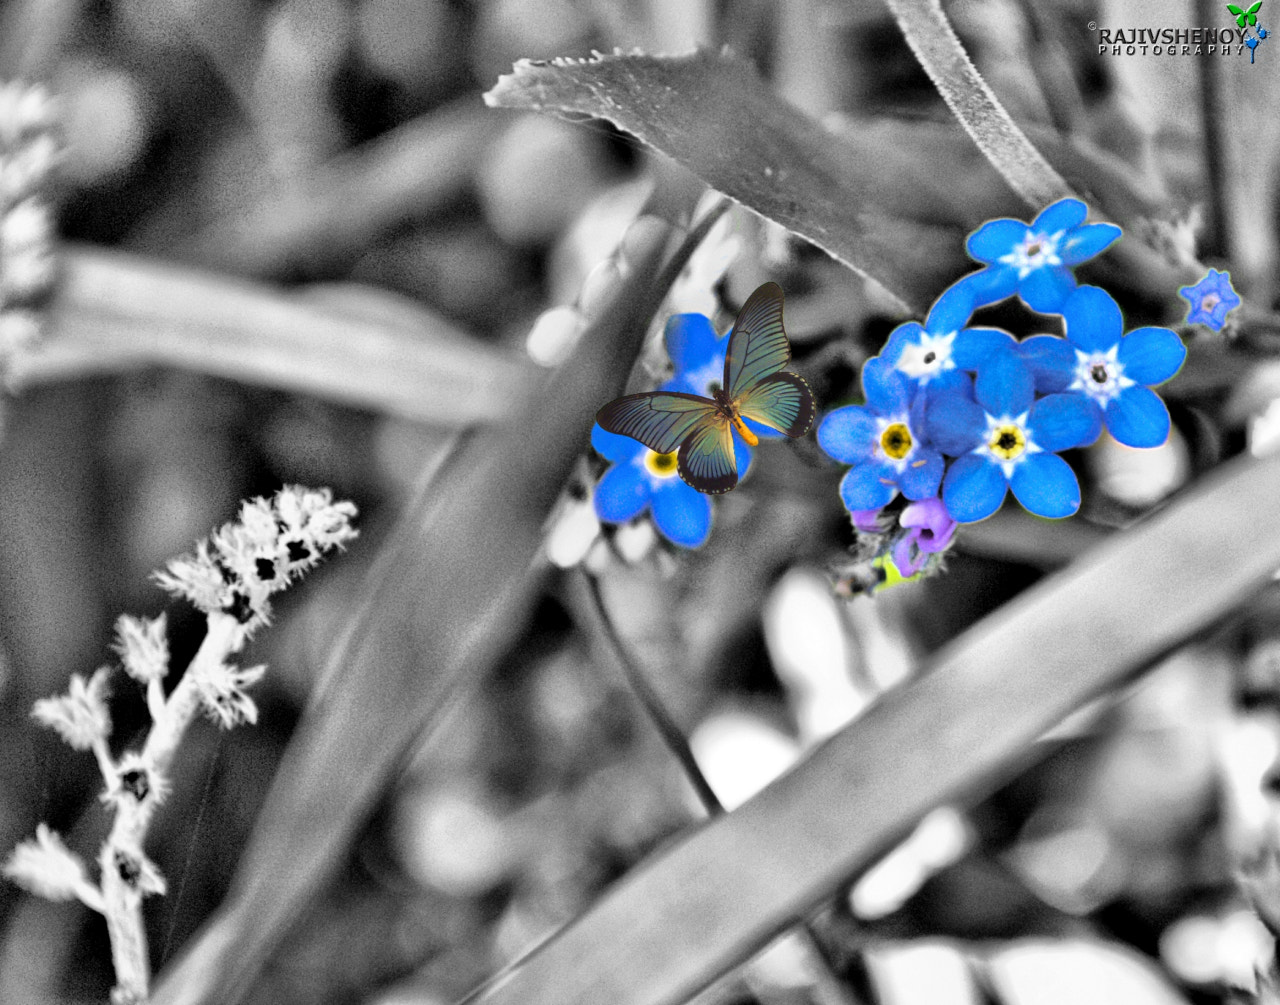 Photograph Blue Flower by Rajiv Shenoy on 500px